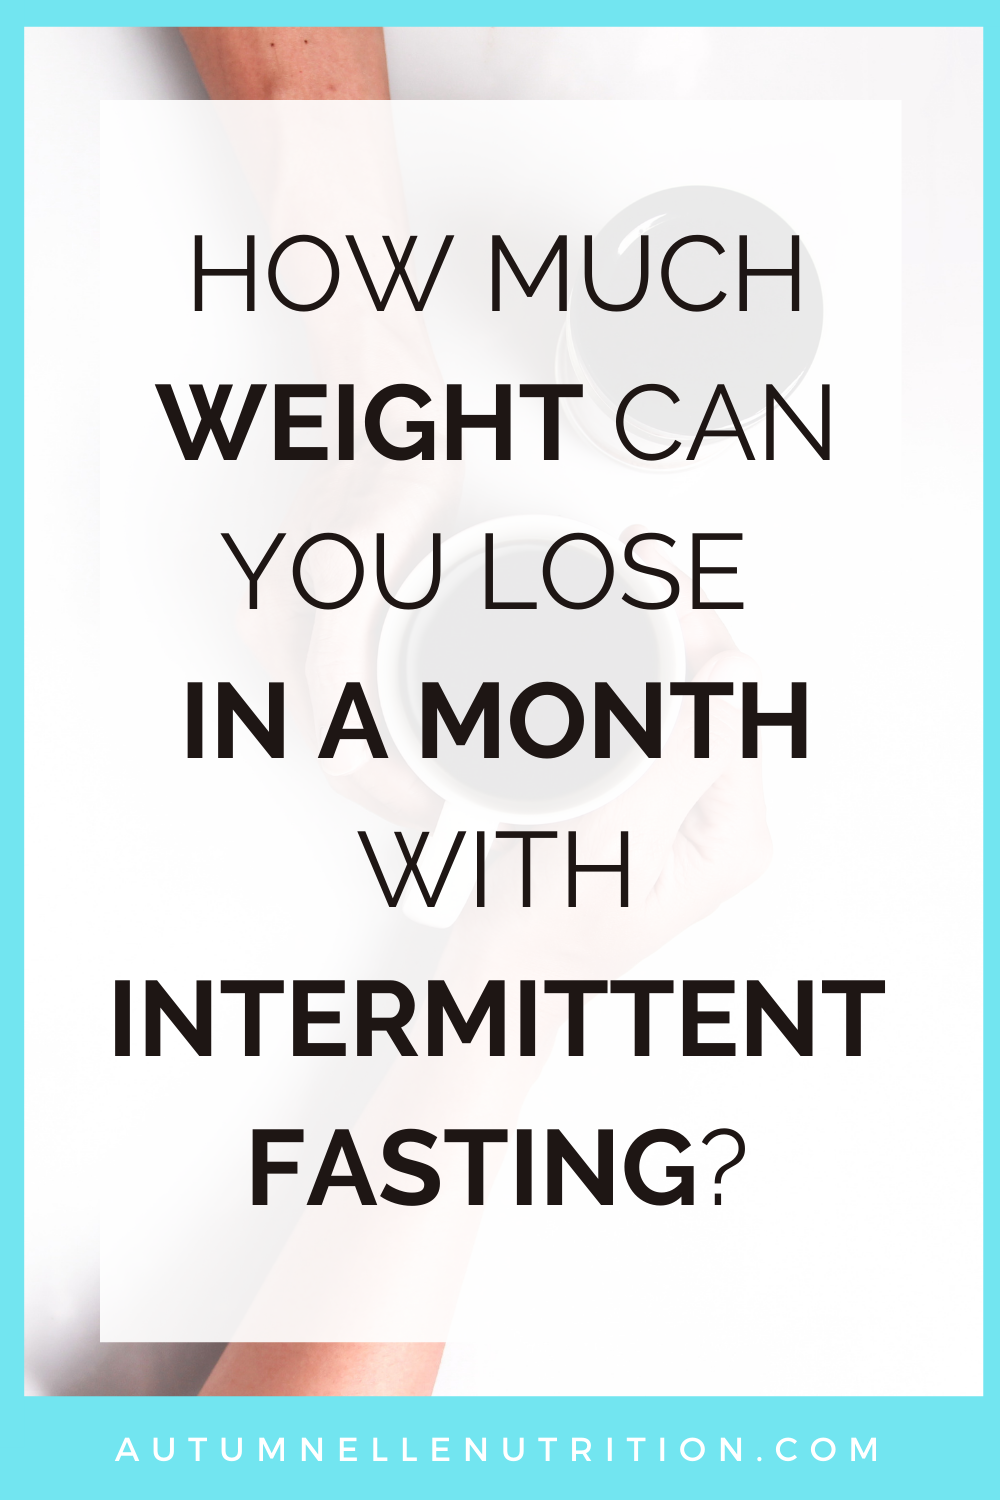 How Much Weight Can You Lose In A Month With Intermittent Fasting?